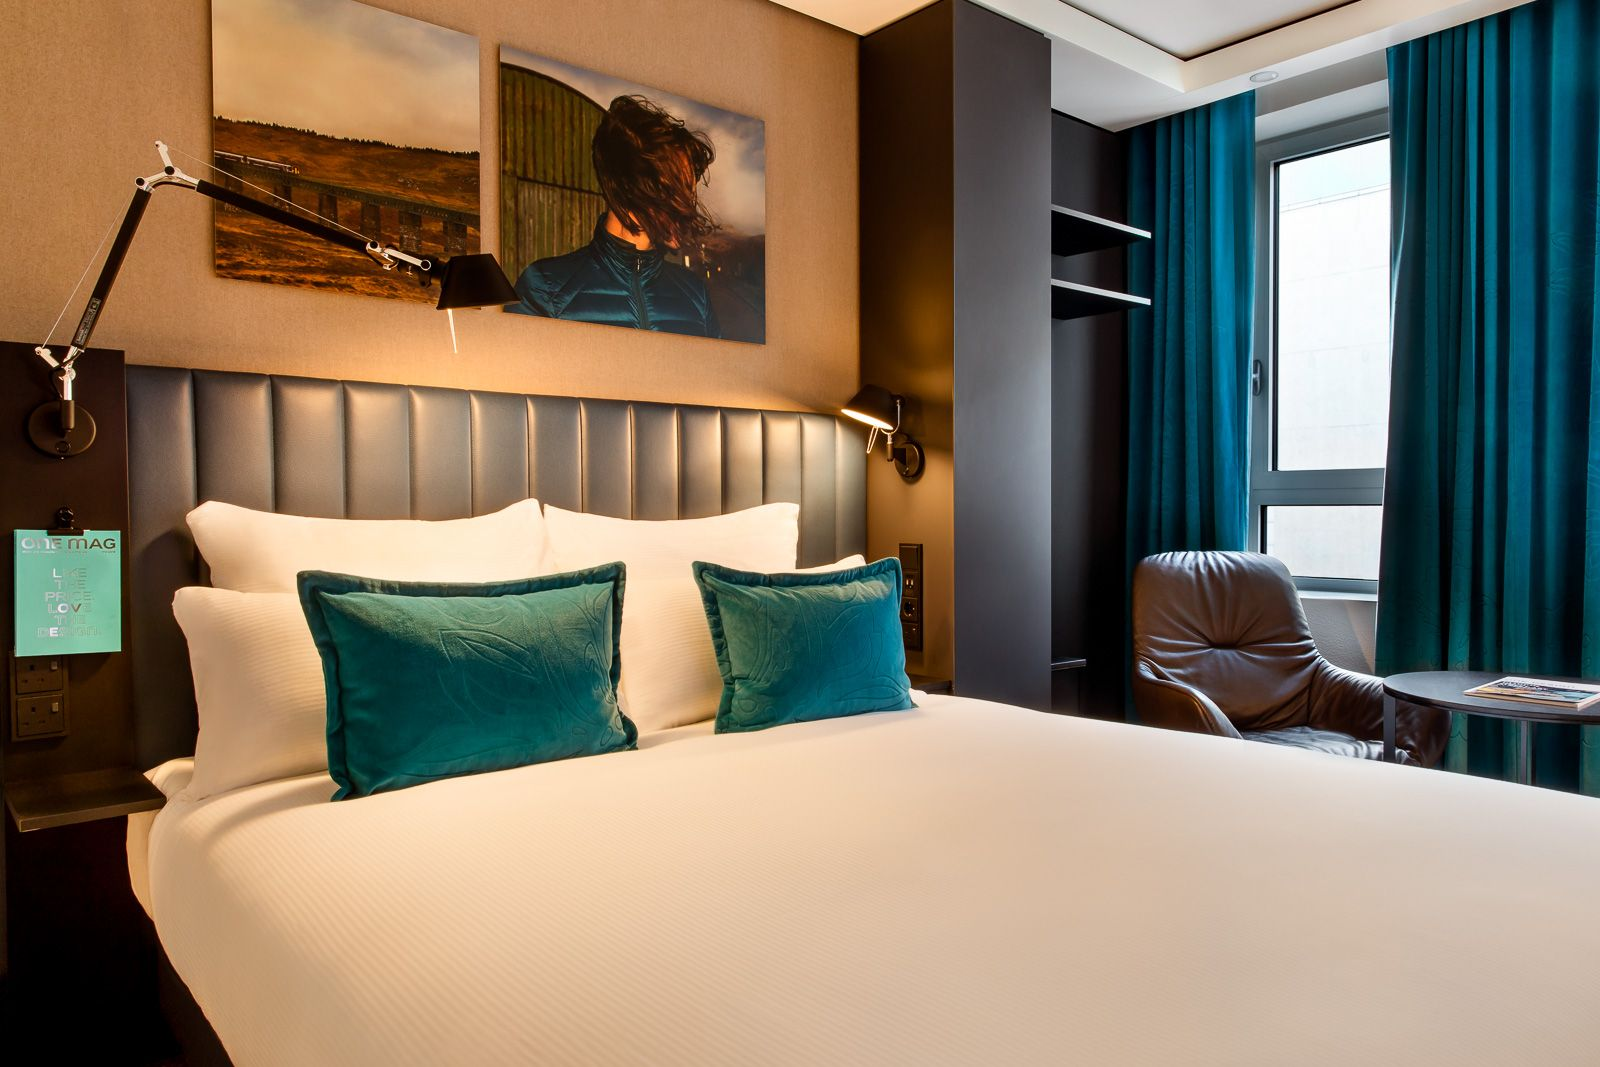 Hotel Glasgow Motel One Home, Bed springs, Home decor